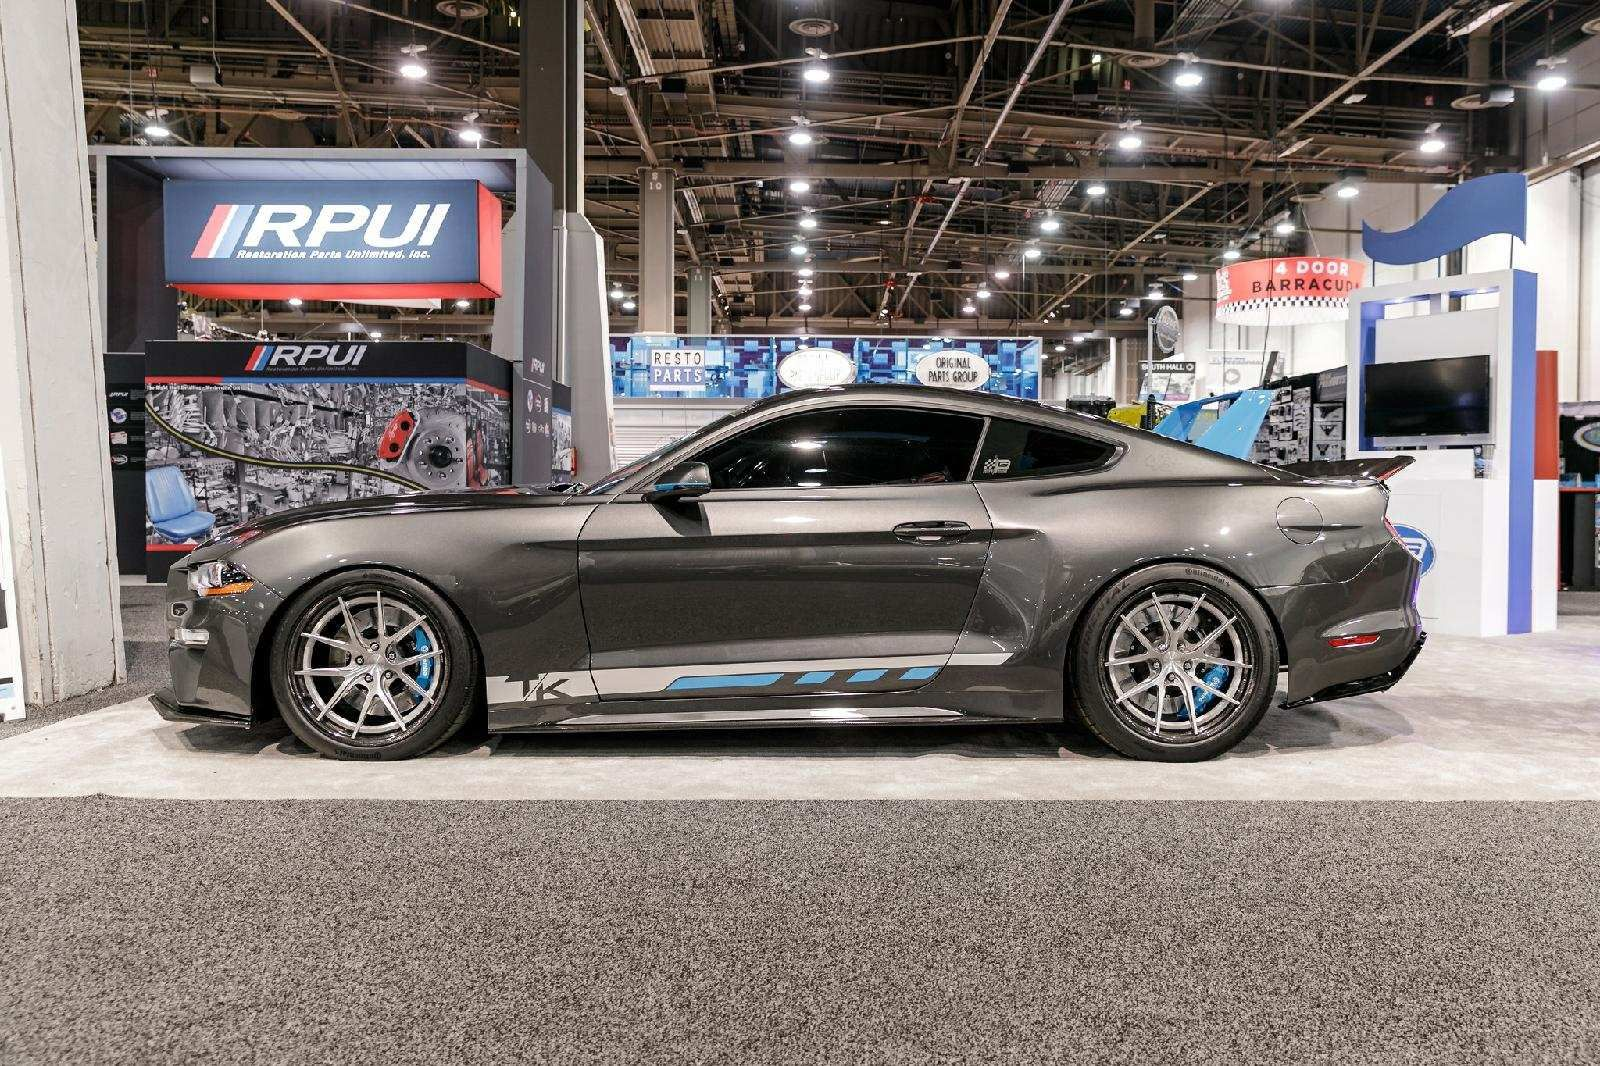 Ford Mustang | Petty's Garage